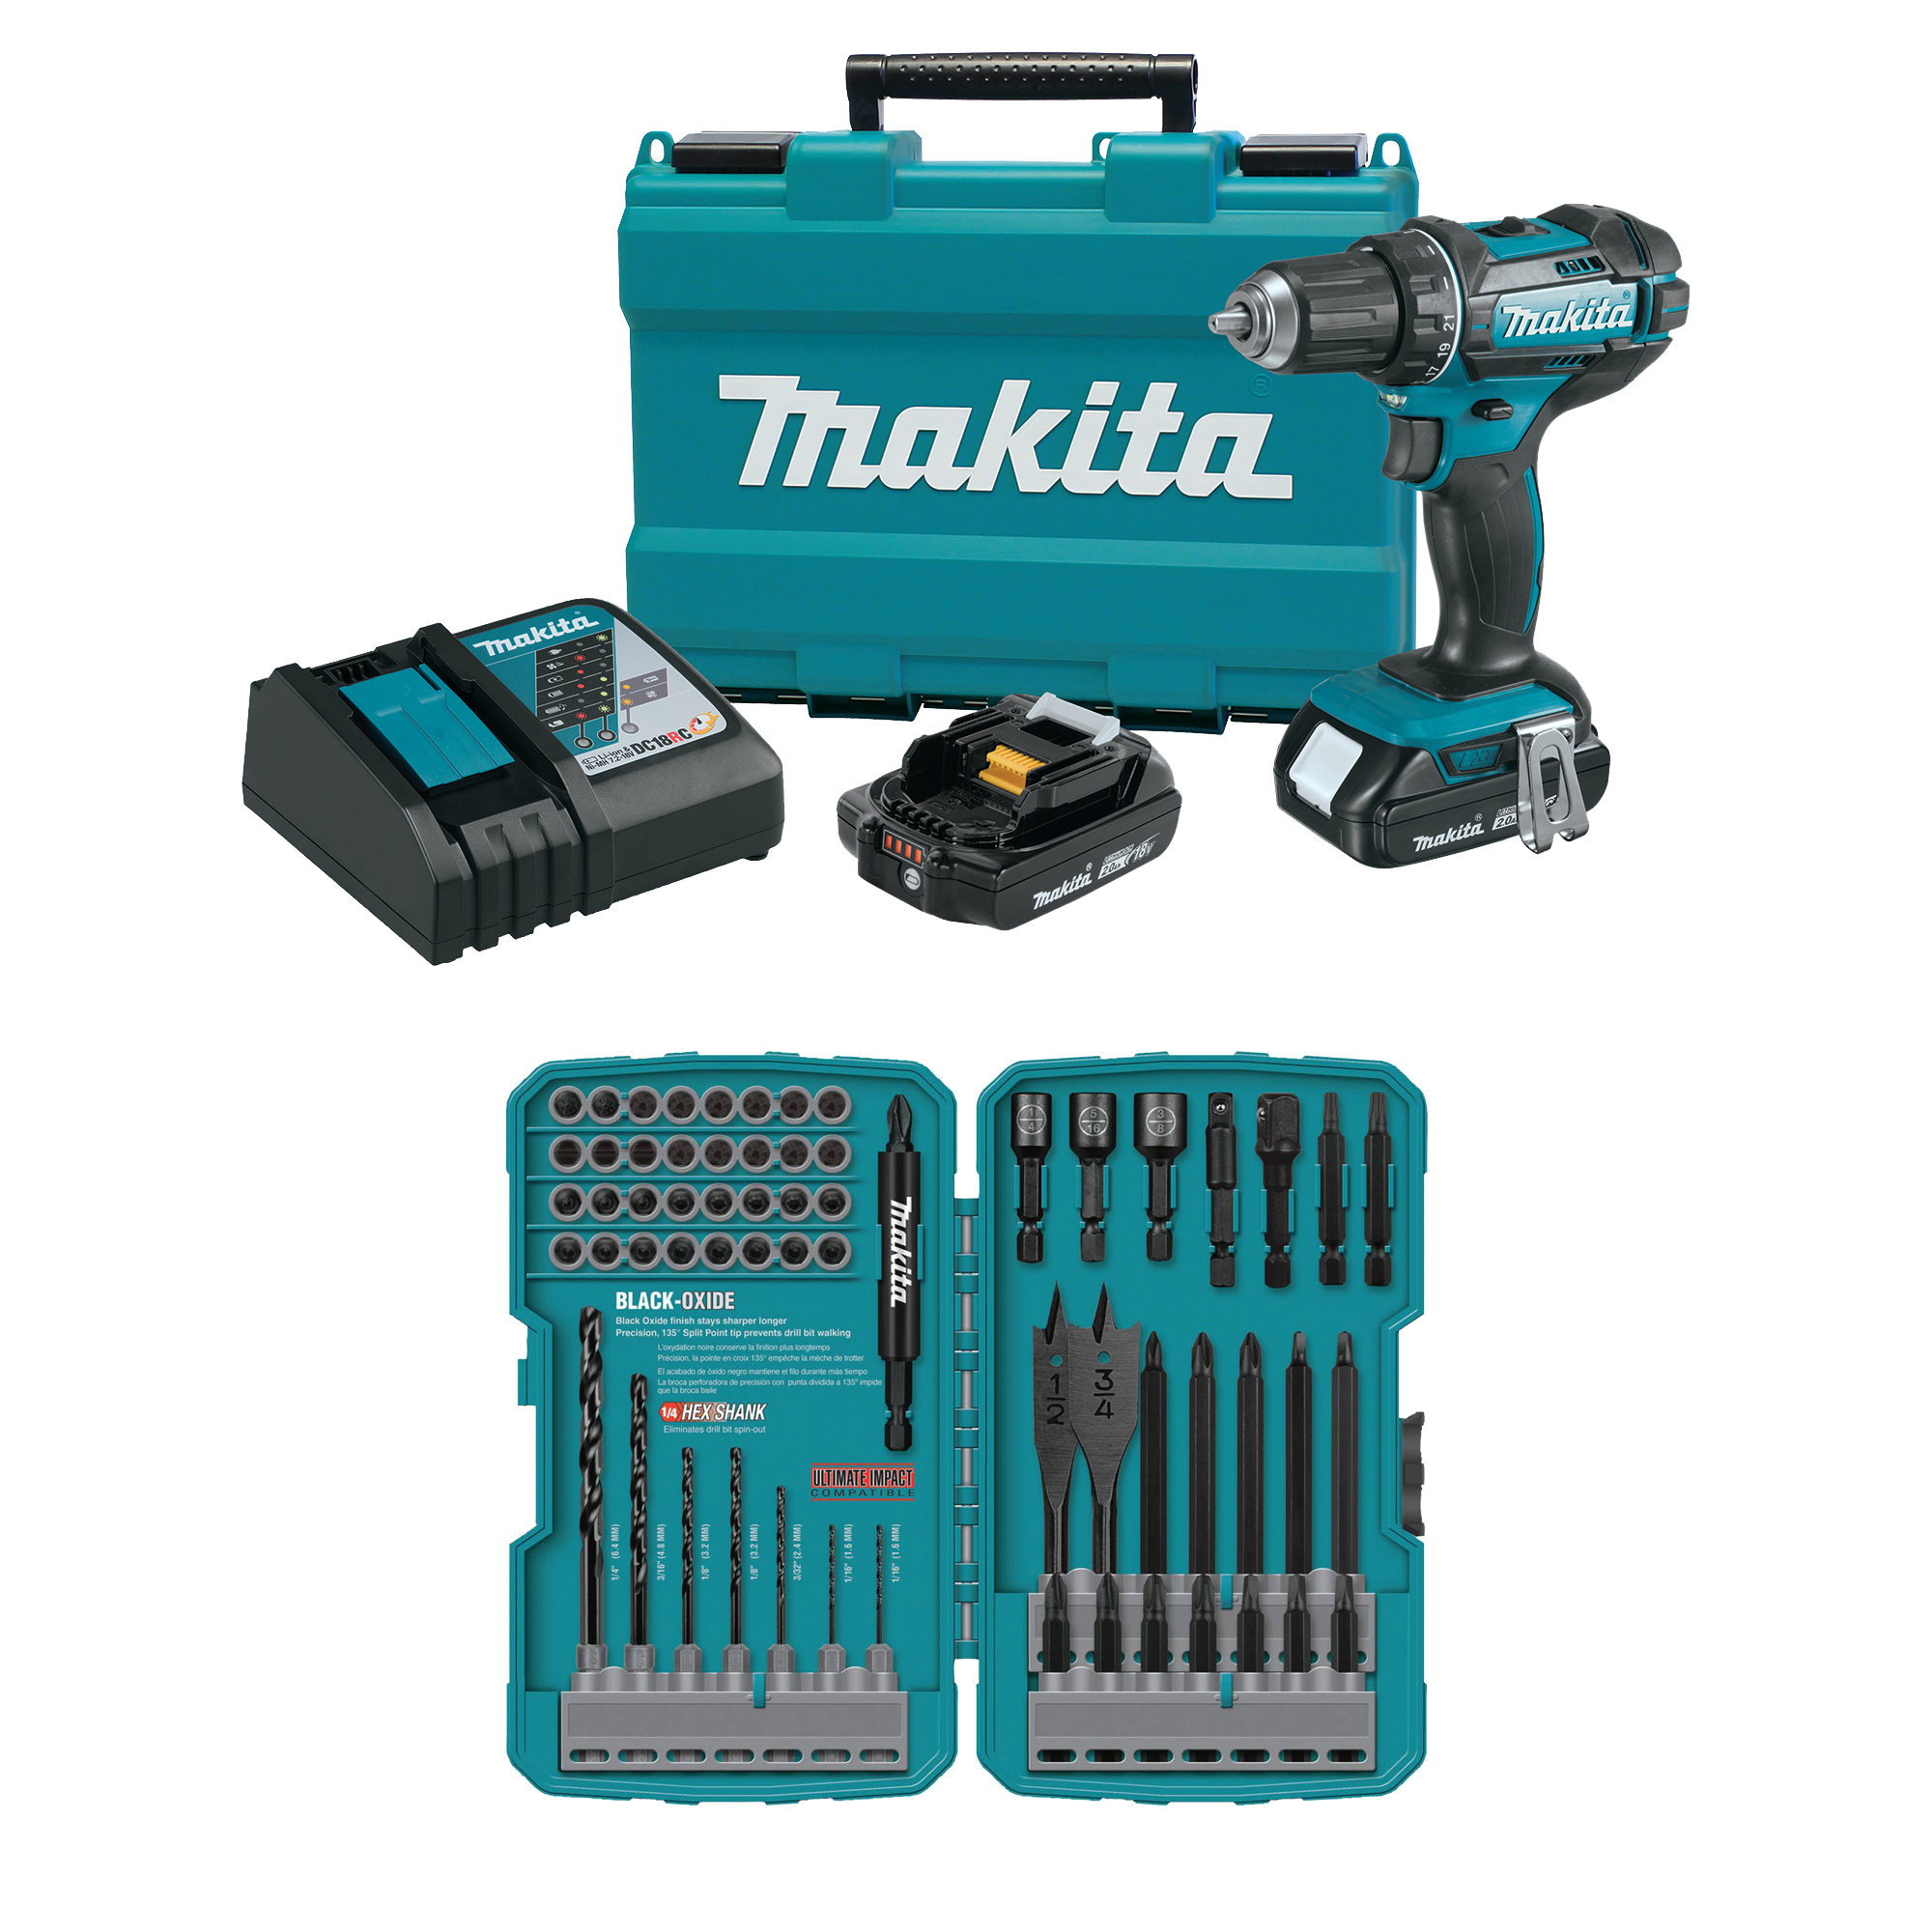 makita 18v lxt lithium ion cordless 1 2 inch driver drill. Black Bedroom Furniture Sets. Home Design Ideas